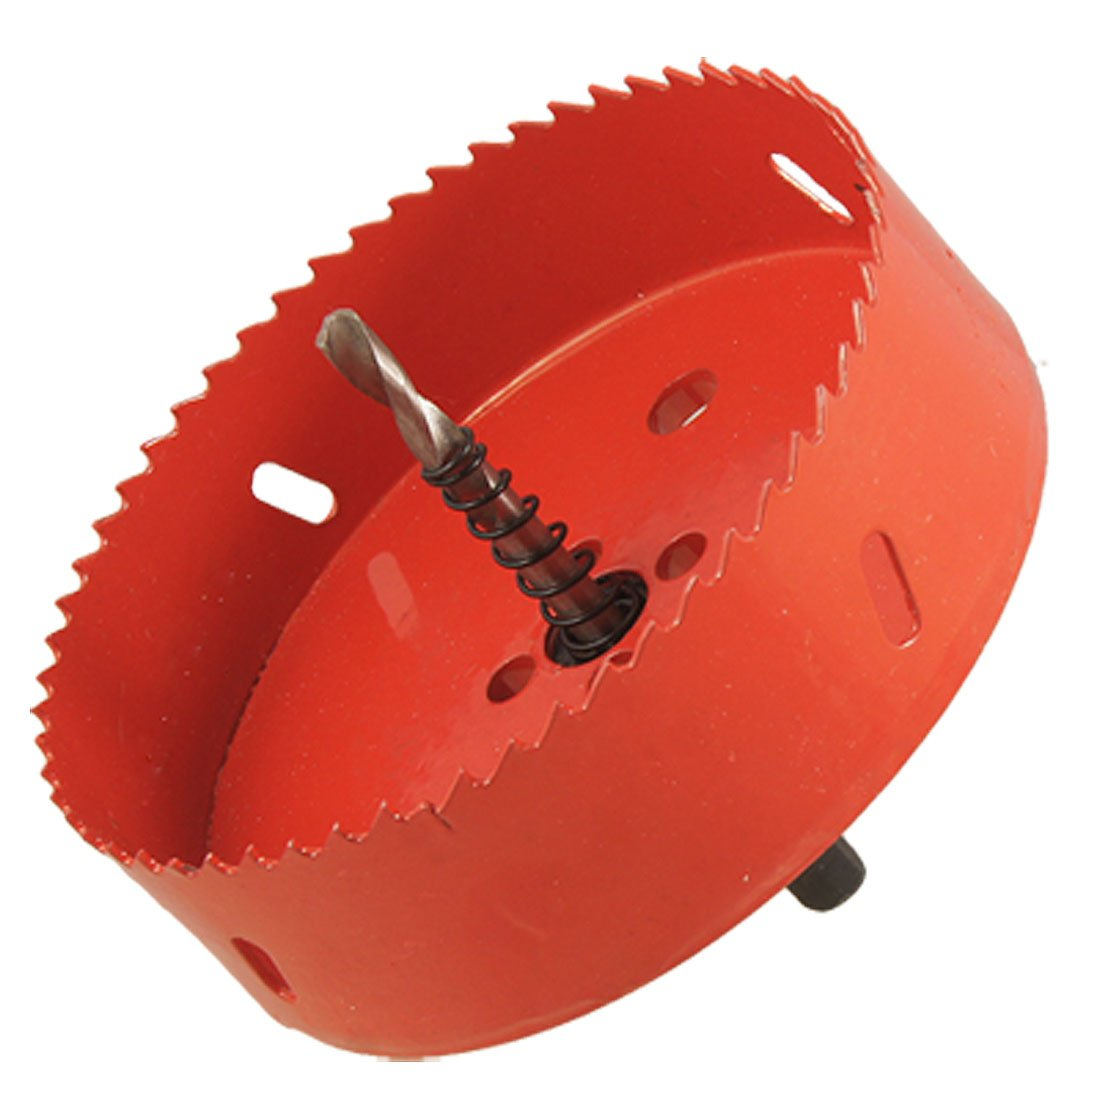 0.63 Drill Bit 120mm Long Red Metal Hole Saw Set for Drilling Wood new 50mm concrete cement wall hole saw set with drill bit 200mm rod wrench for power tool